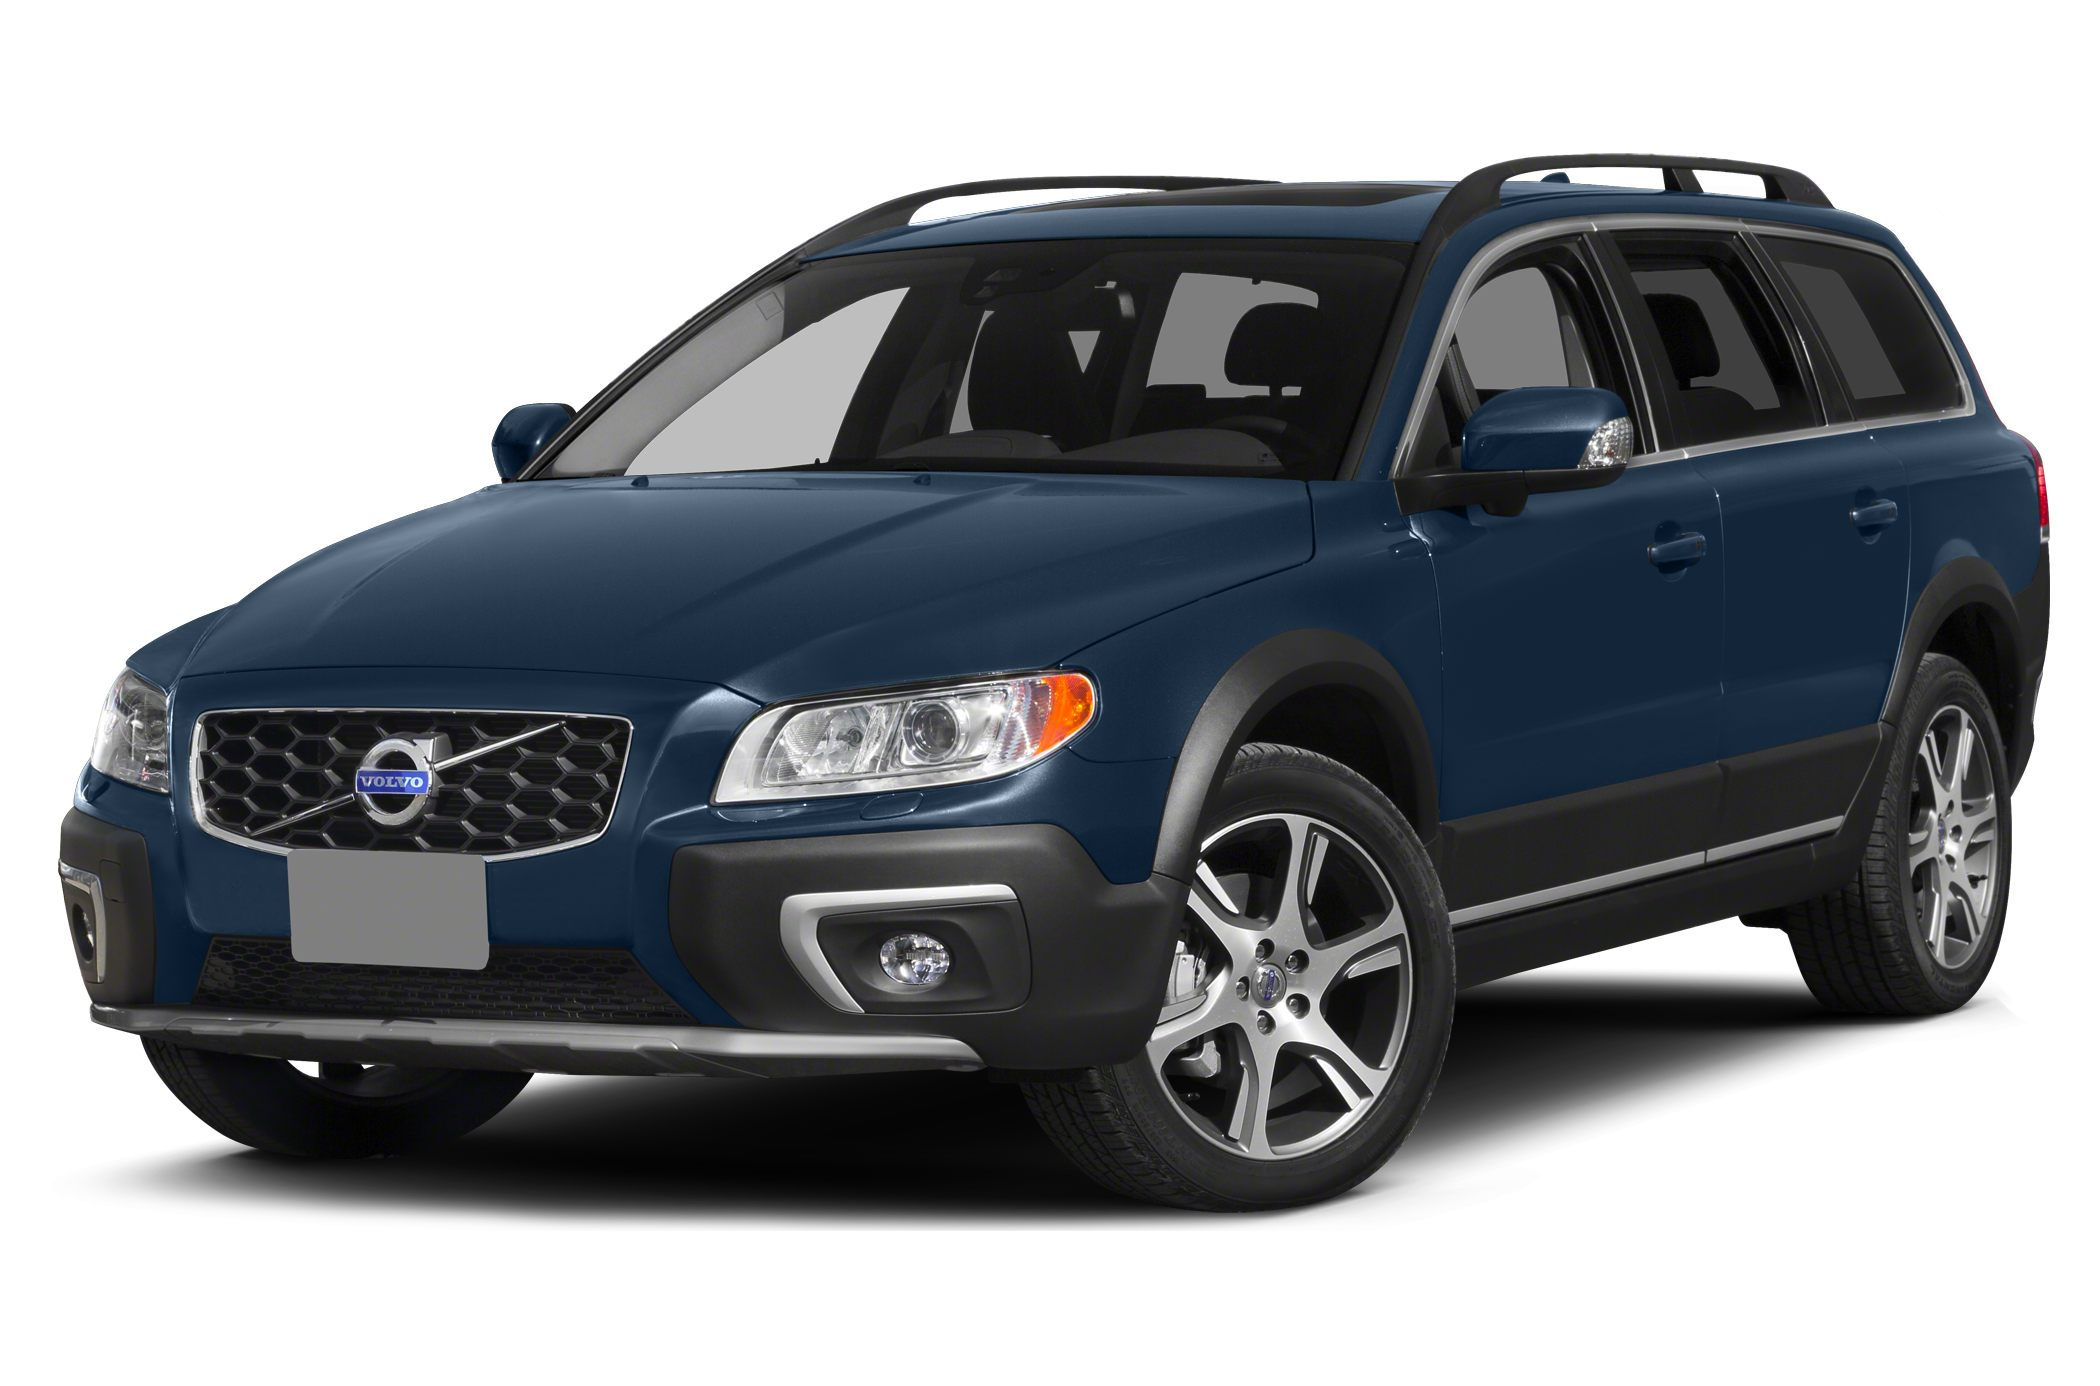 2015 Volvo XC70 T5 Premier Wagon for sale in Eugene for $41,975 with 15 miles.